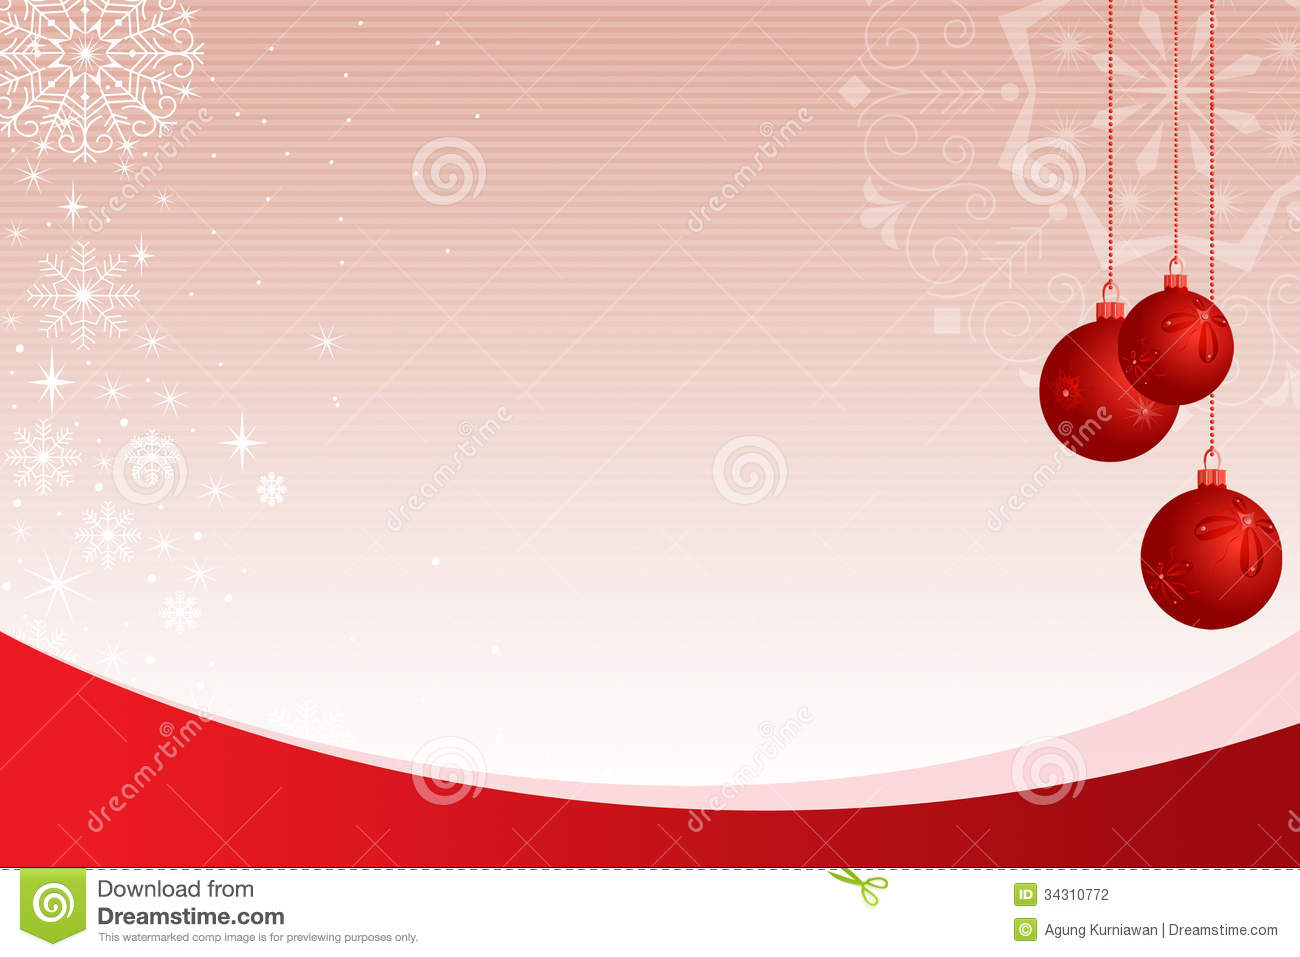 birthday greeting card background design ; ornamental-background-red-bubble-can-be-used-many-purpose-example-greeting-card-invitation-card-christmas-card-birthday-34310772